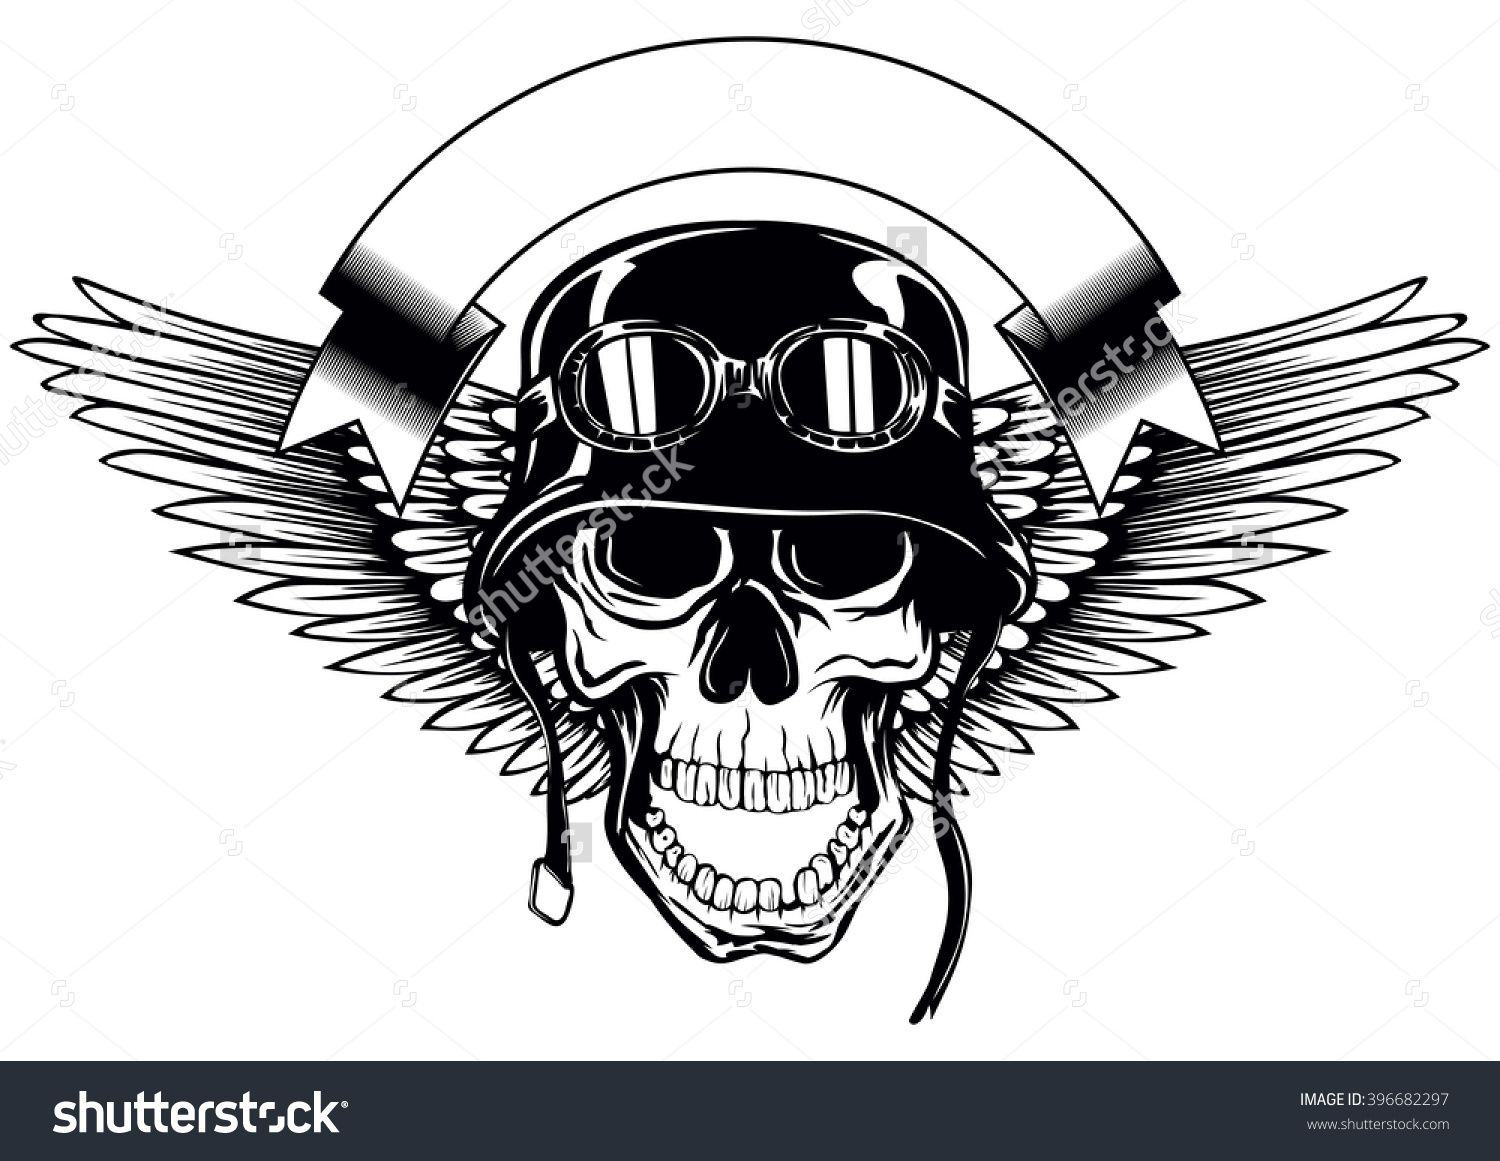 1500x1161 Abstract Vector Illustration Skull In Army Helmet With Goggles And